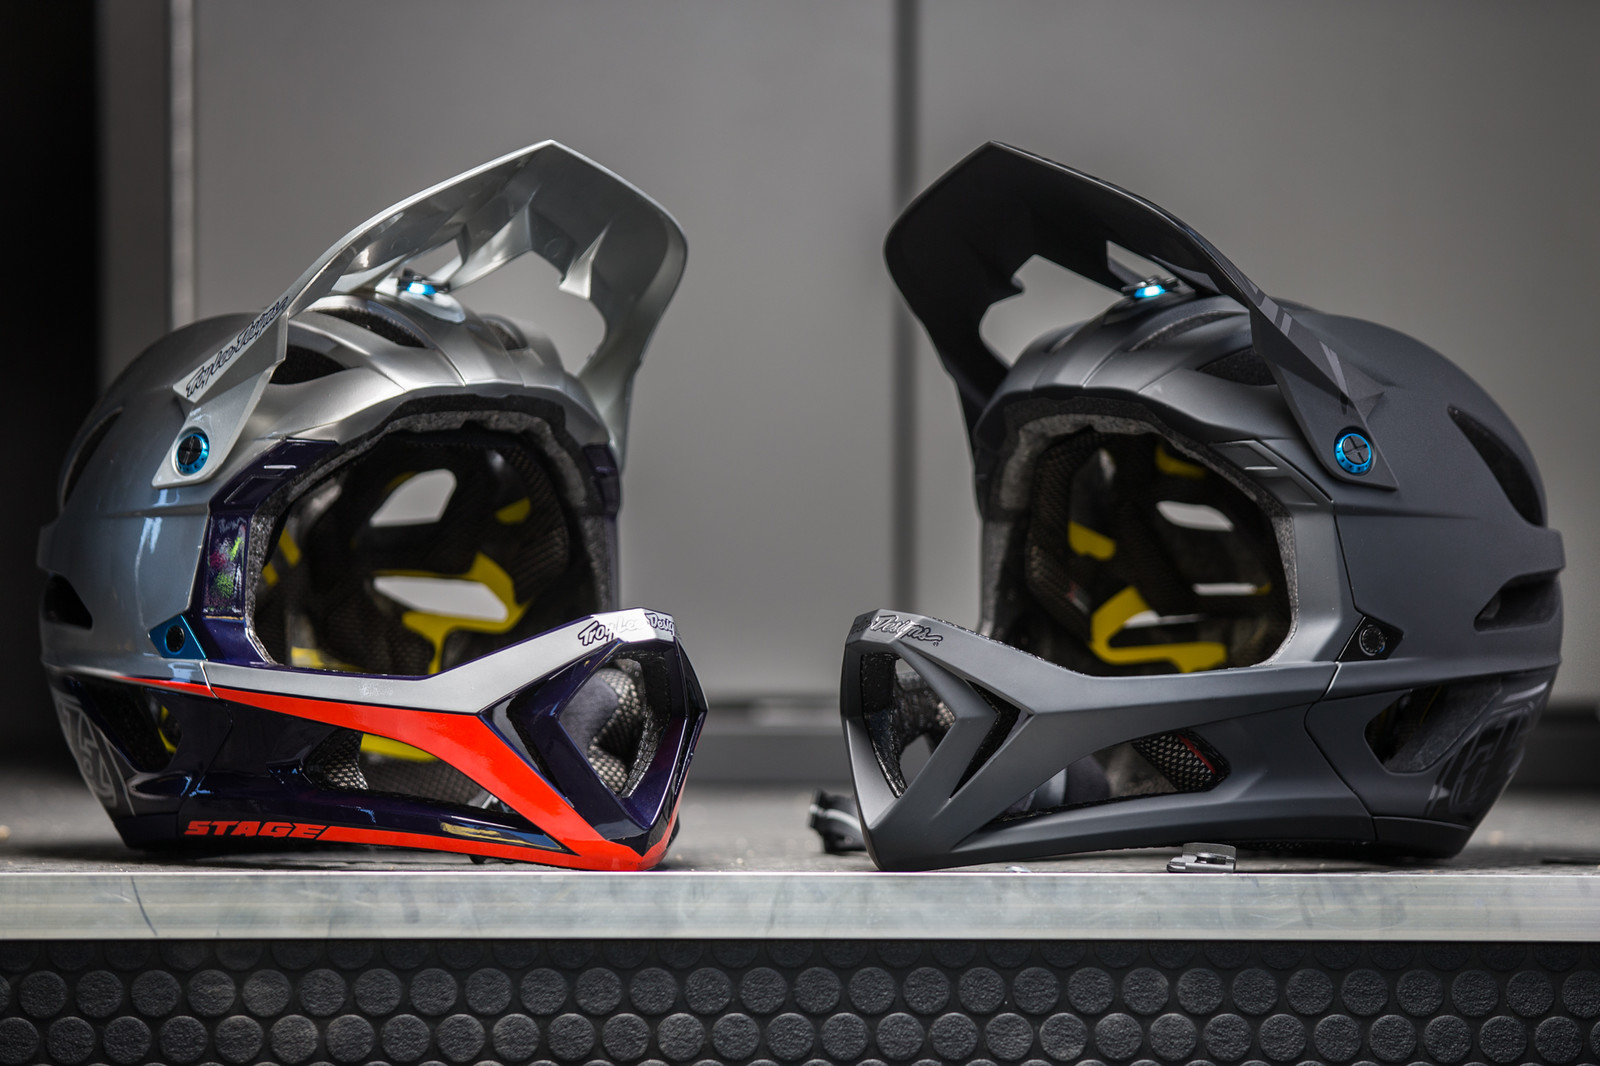 The Lightest MTB Full Face? See the Troy Lee Designs Stage Helmet and 2018 Sneak Peek - Sea Otter Classic